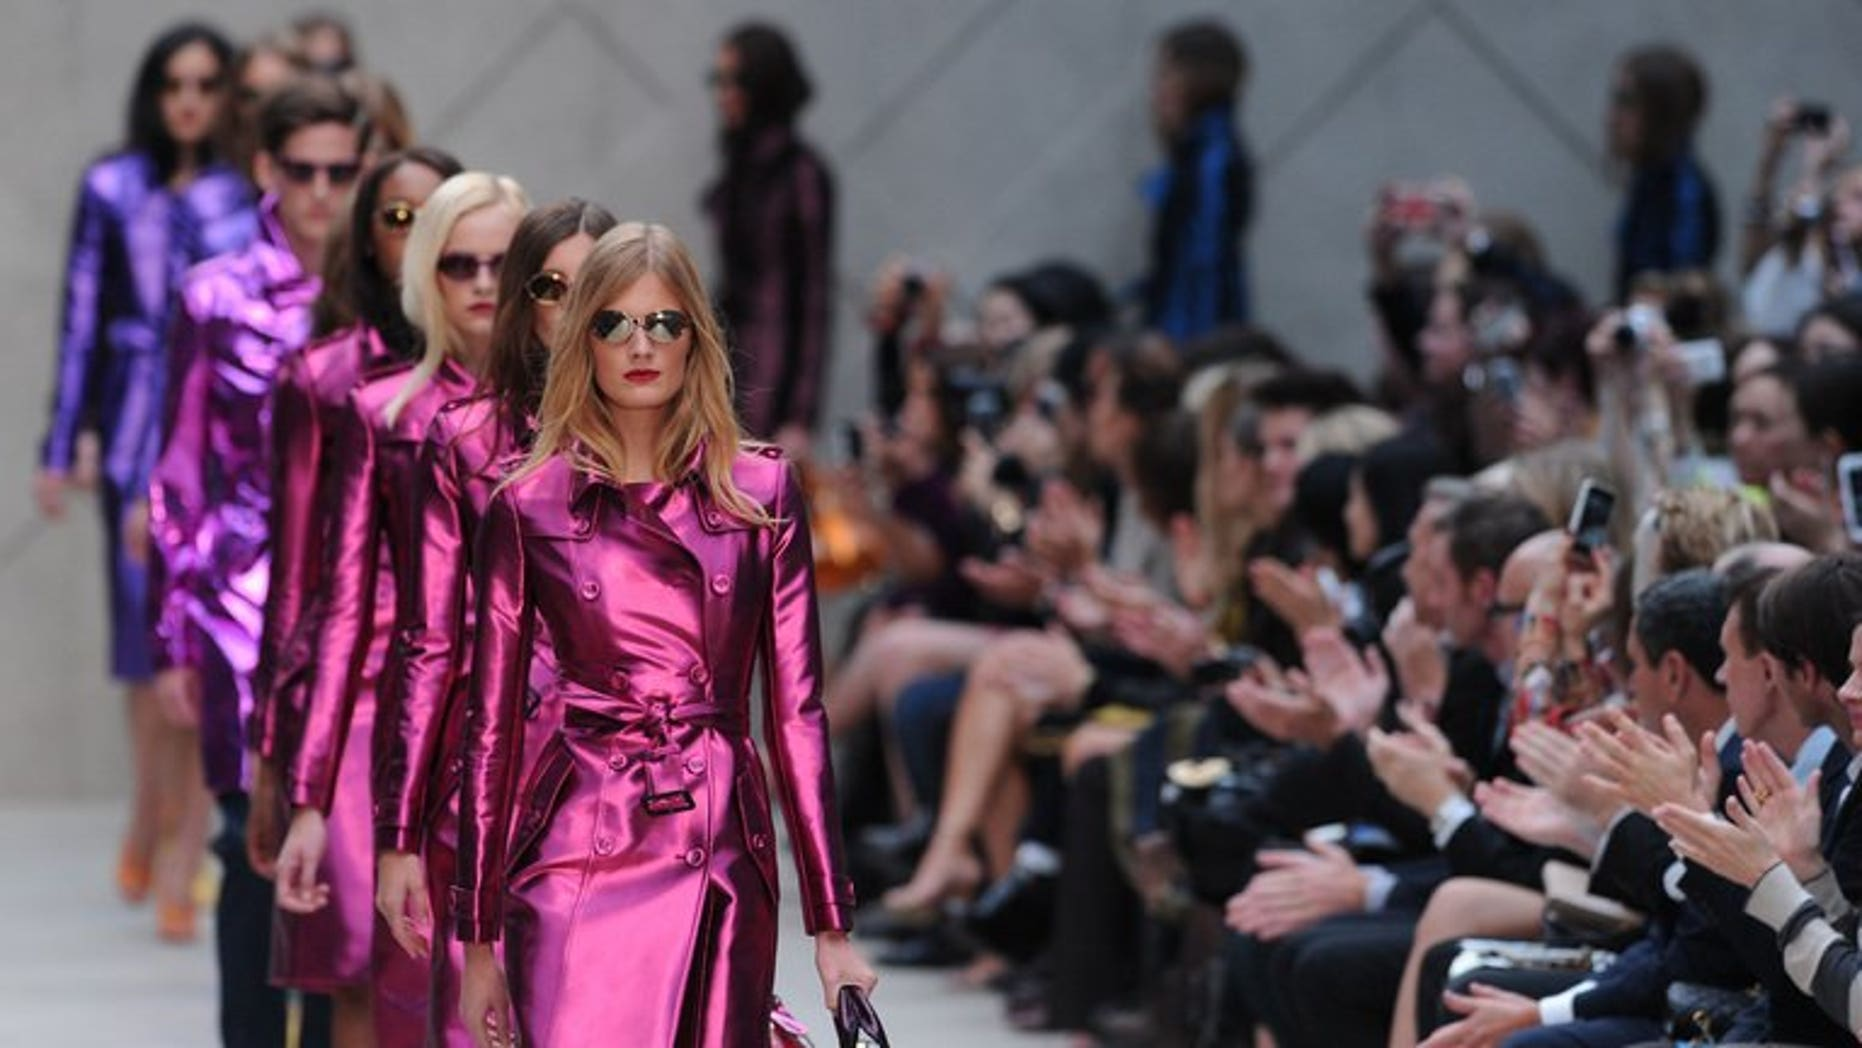 Models present the Burberry Prorsum 2013 spring/summer collection at London Fashion Week on September 17, 2012. British luxury clothing and handbag maker Burberry says sales rose in its first quarter, boosted by strong growth in the Asia Pacific region and in the Americas.